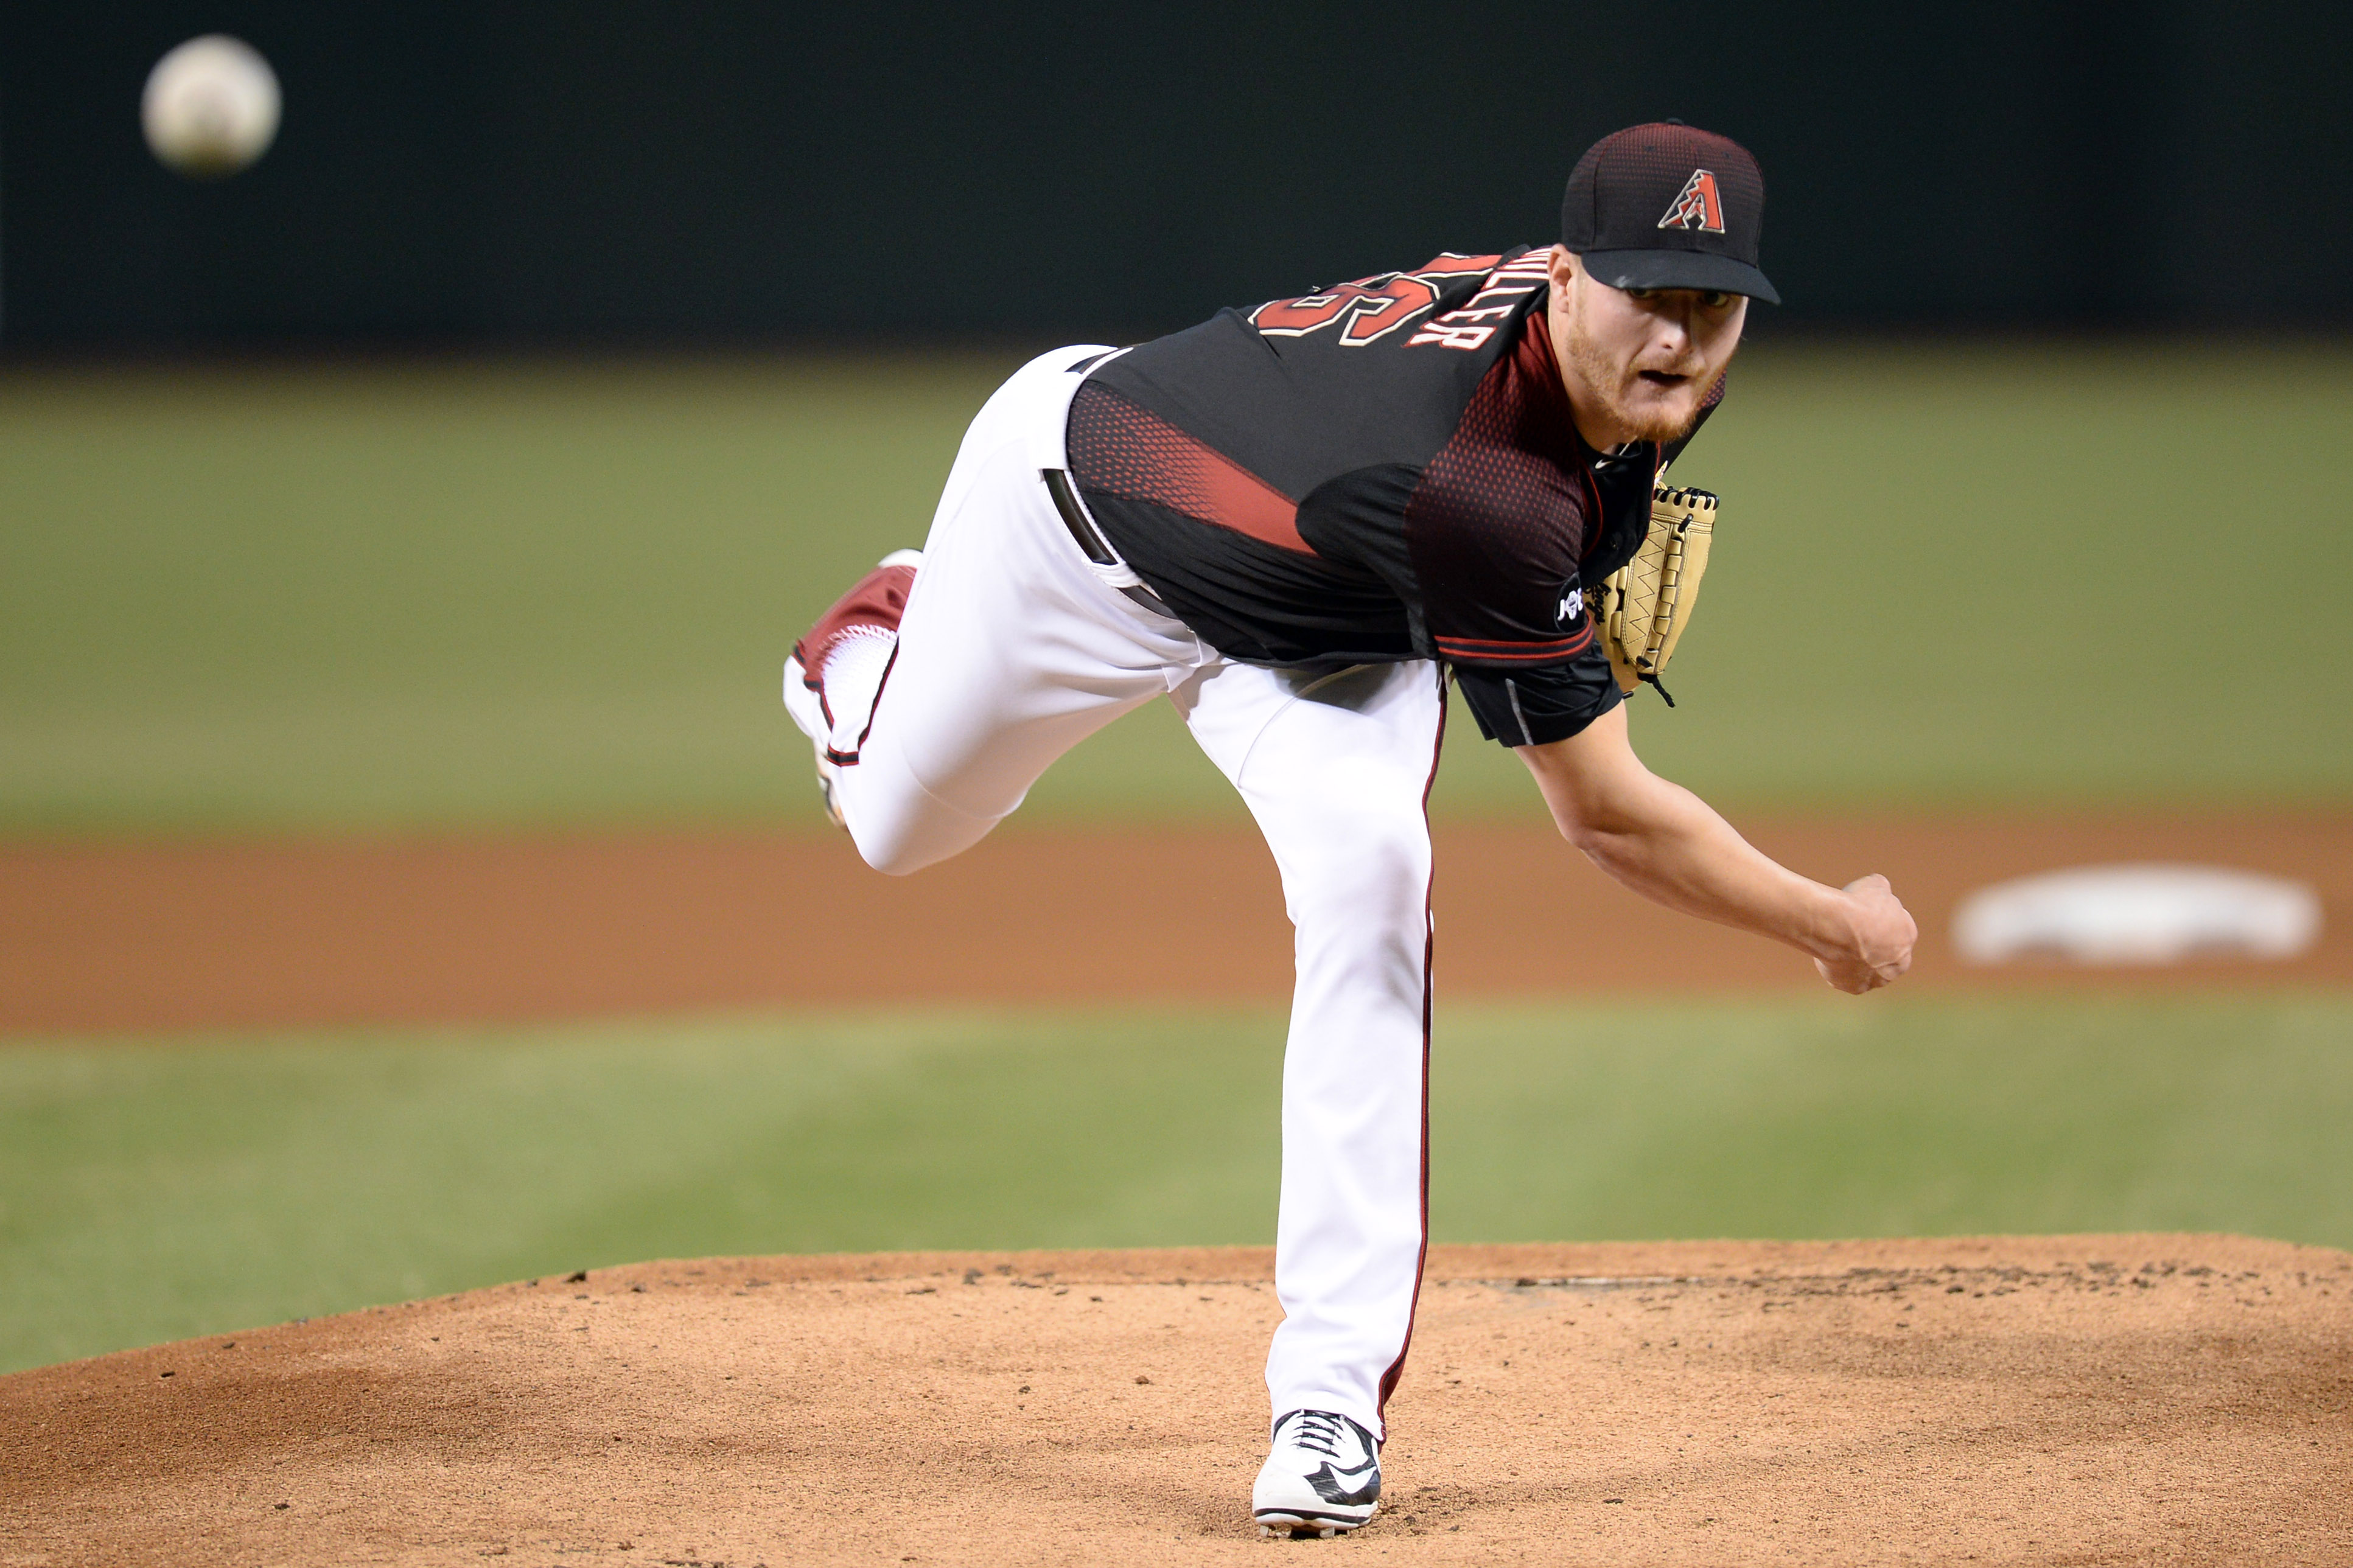 9546638-mlb-los-angeles-dodgers-at-arizona-diamondbacks